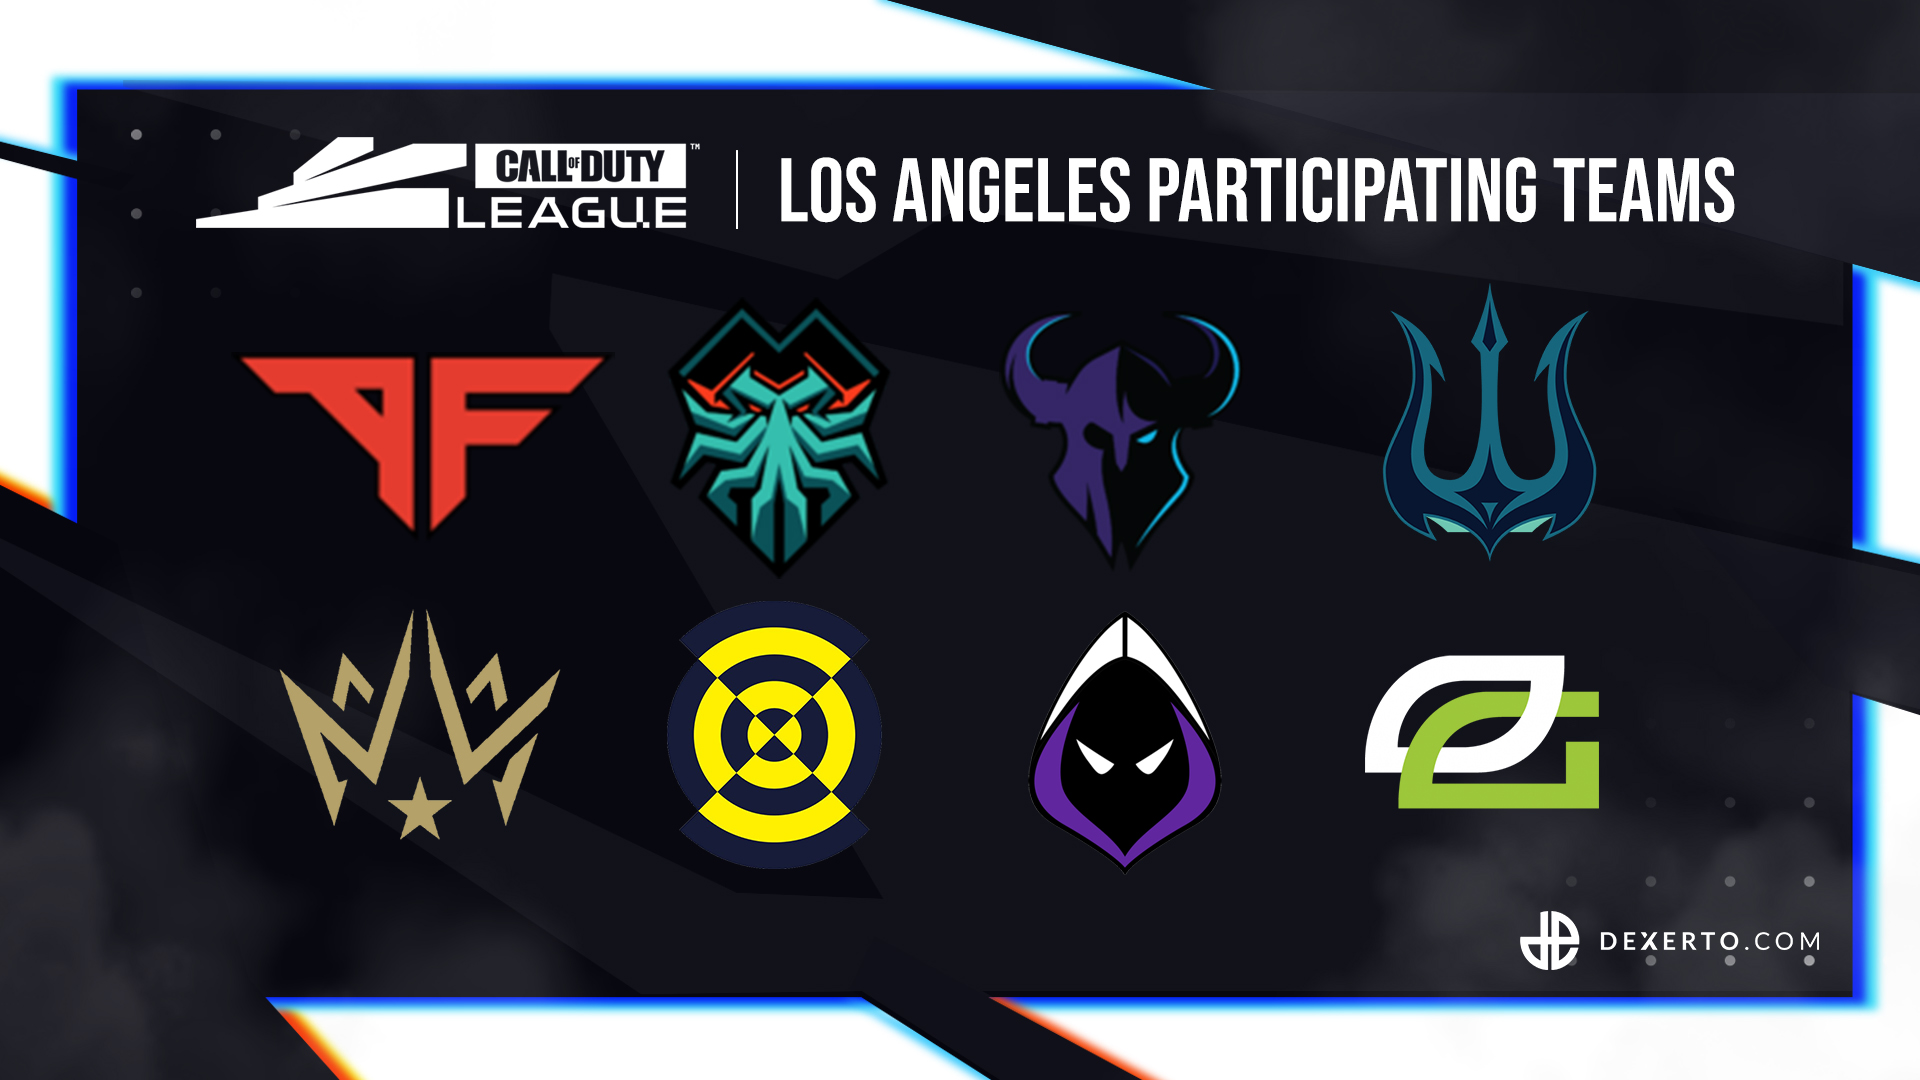 CDL LA's participating teams.